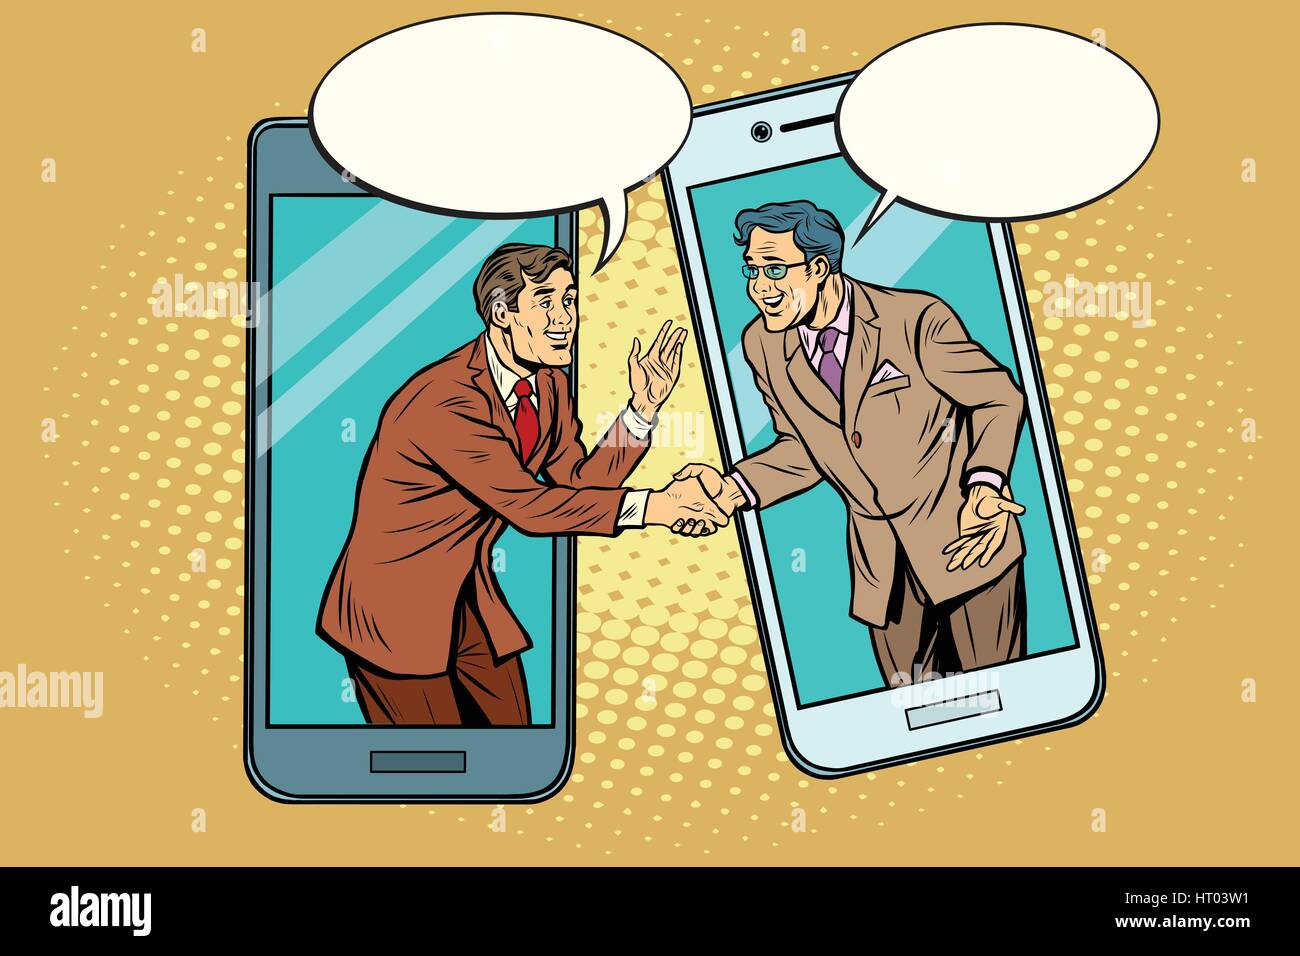 Online the talks of the two businessmen - Stock Vector